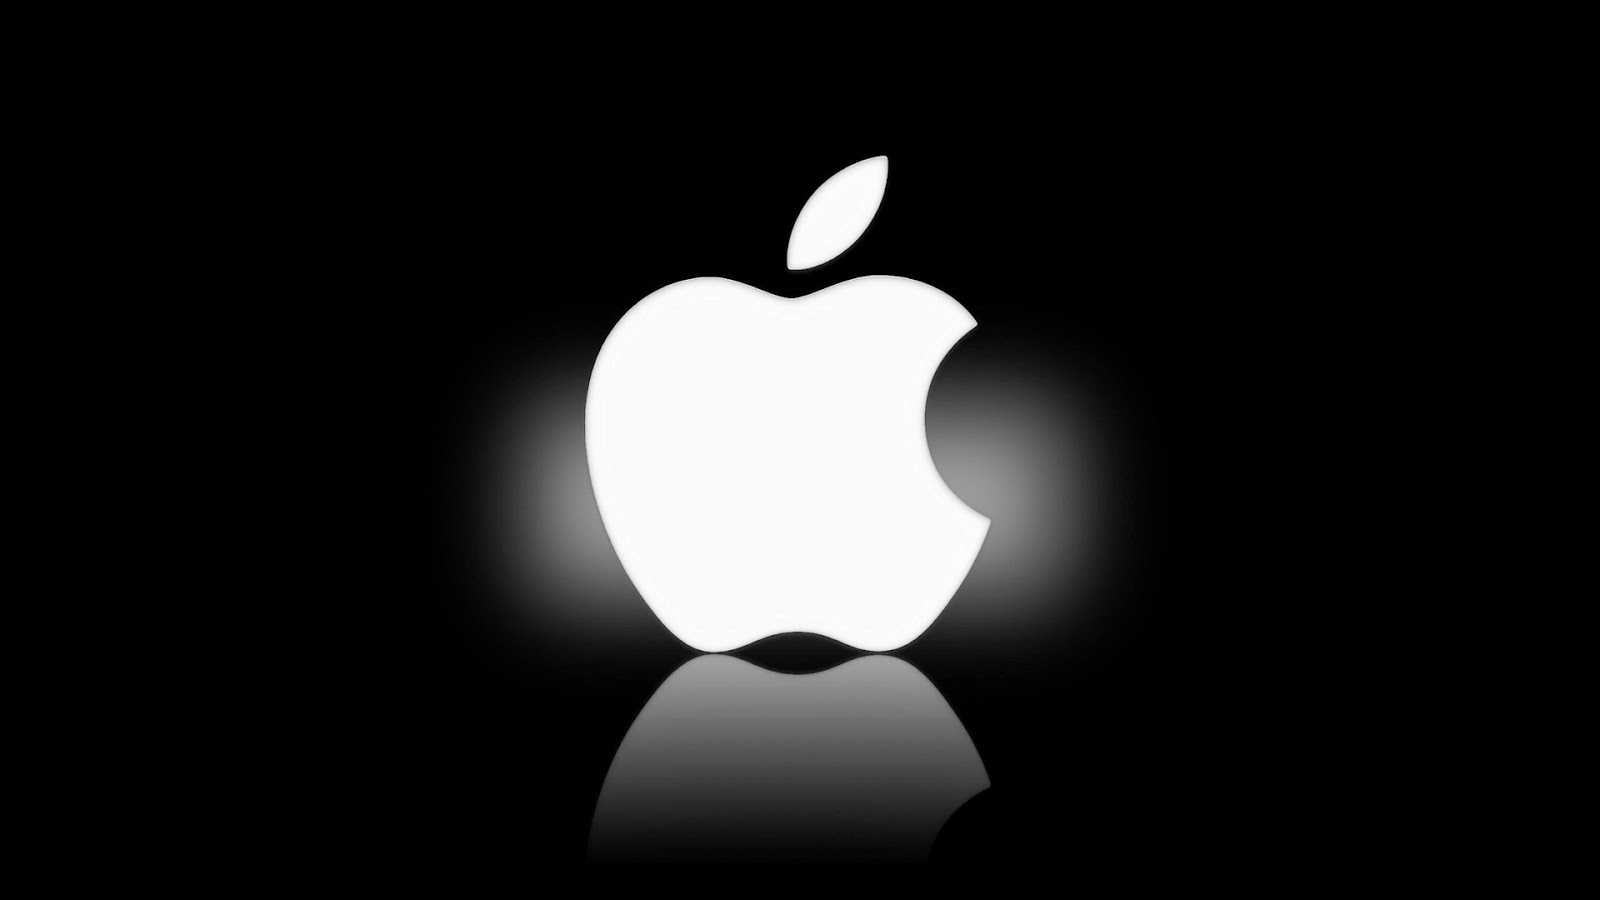 Apple Logo HD Wallpapers Background   Top HD Wallpapers 1600x900